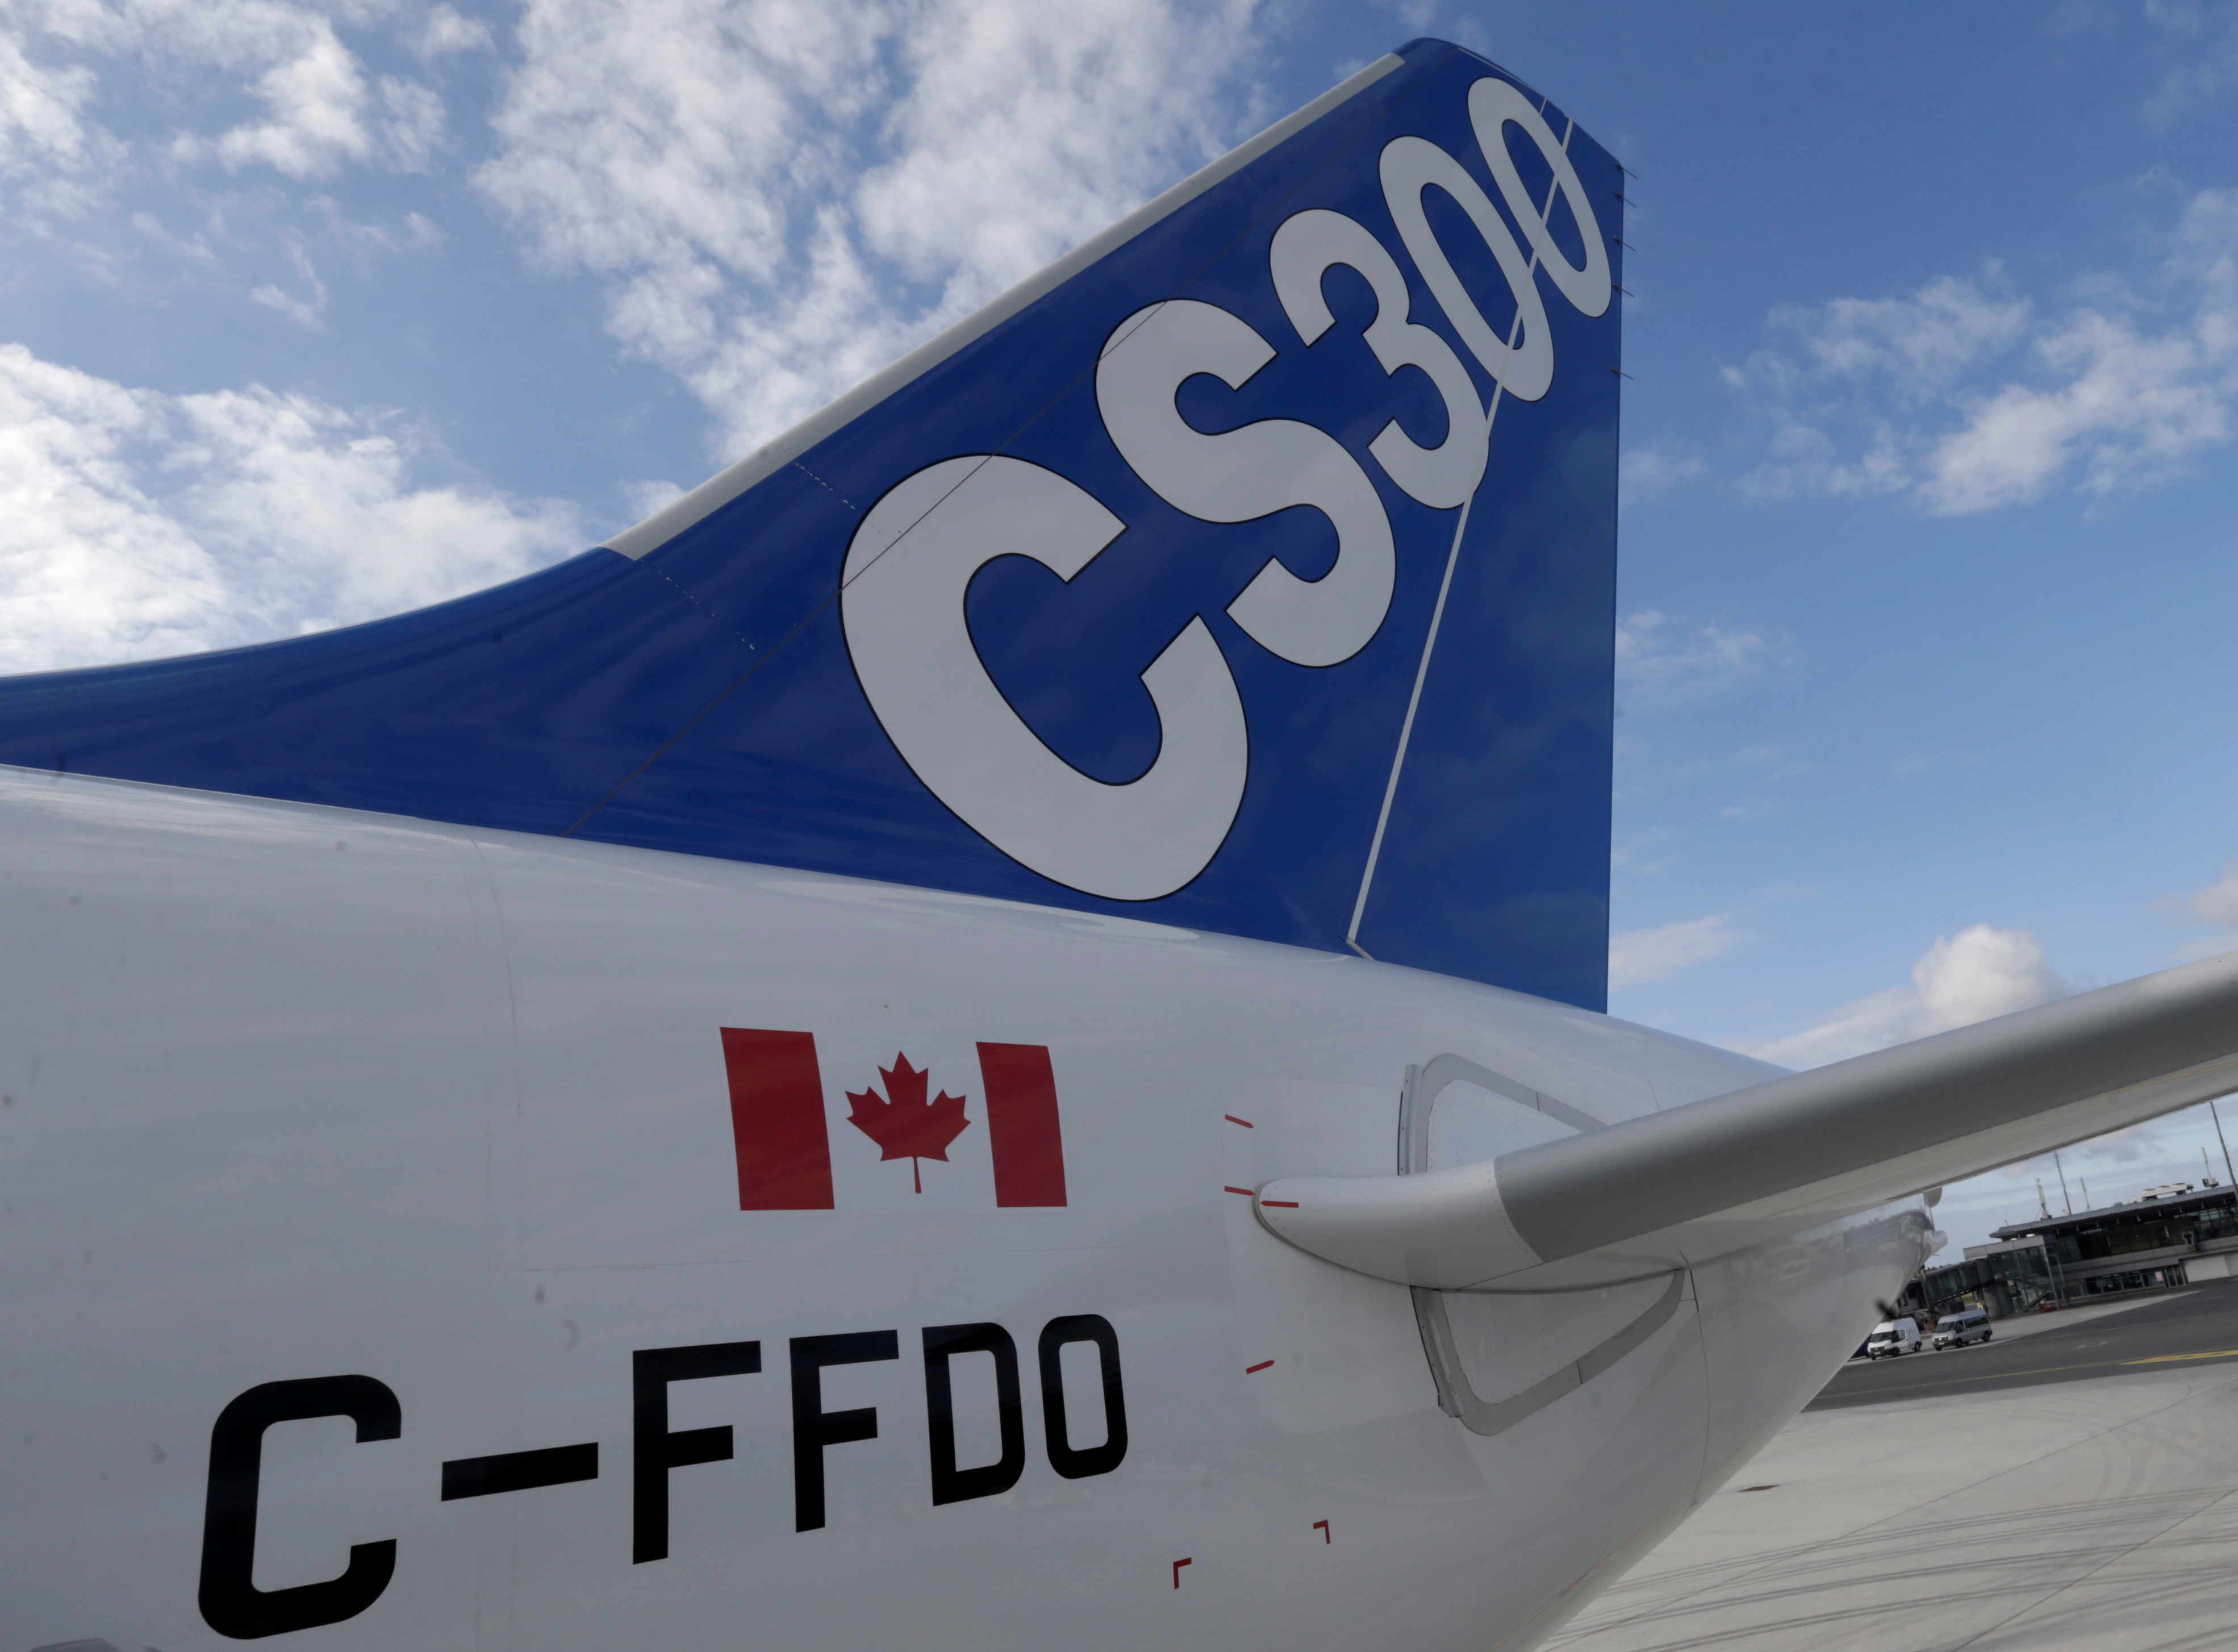 A tail of the Bombardier CS300 test aircraft is pictured at the Riga airport